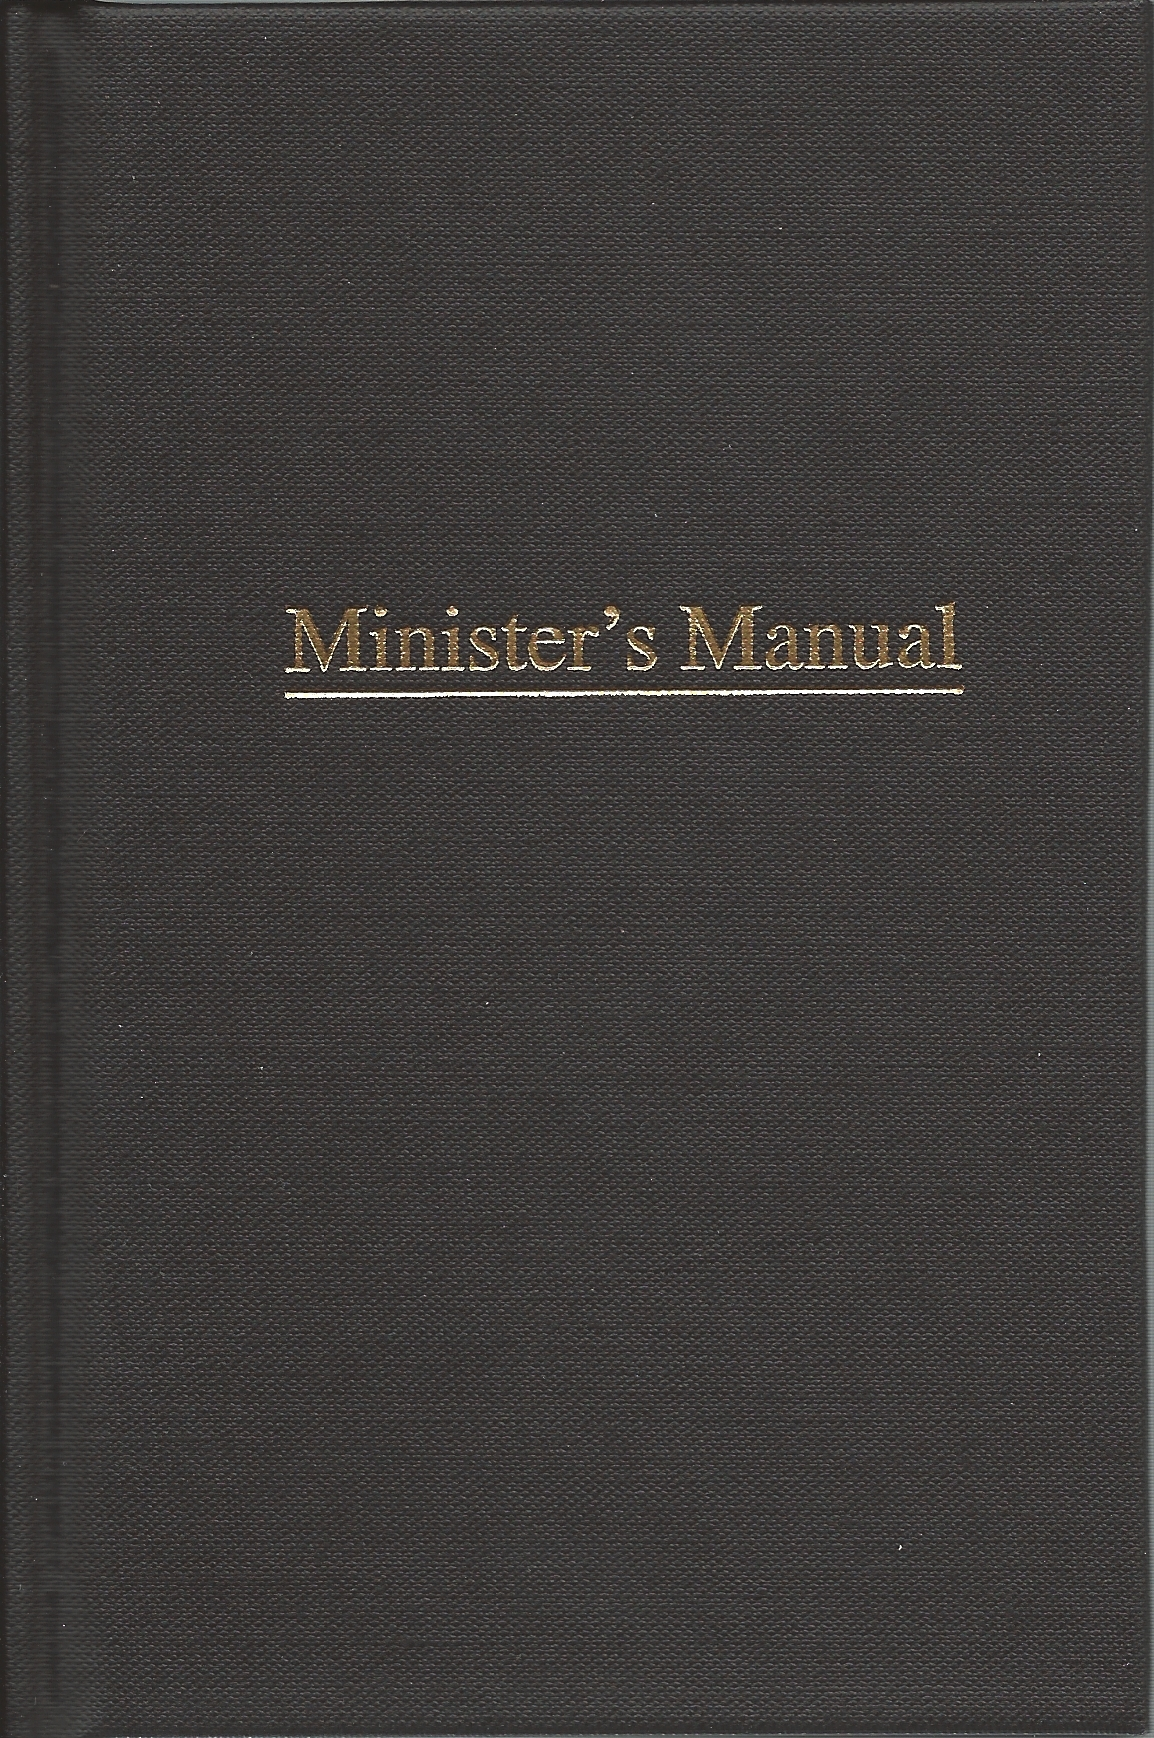 MINISTER'S MANUAL Lamp & Light Publishers